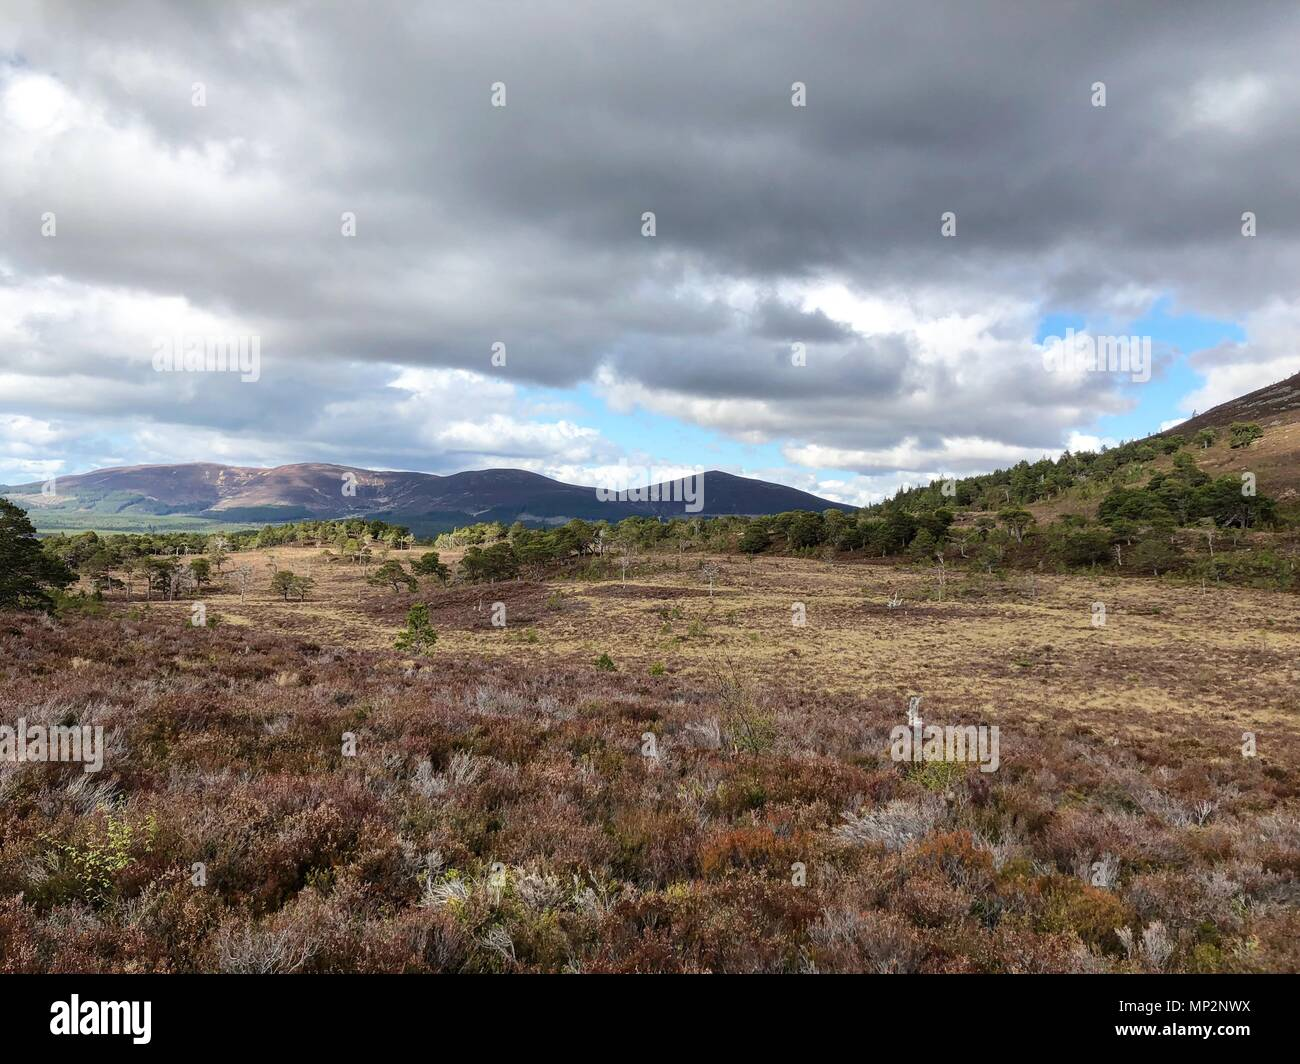 Lairig Ghru high in the Grampian Mountains. A famous mountain pass that cuts through the Cairngorms near to Aviemore and Ben Macdui. - Stock Image